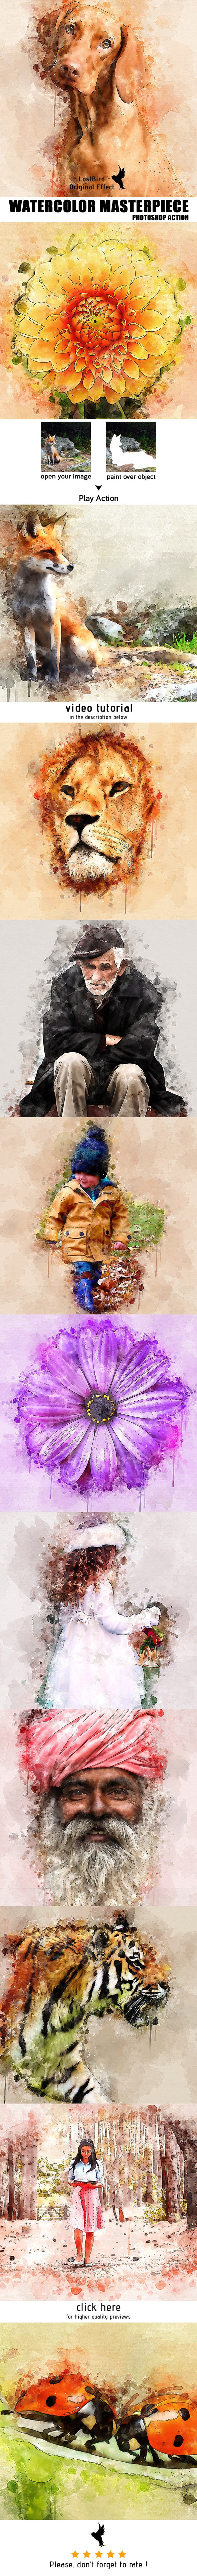 Watercolor Masterpiece - Photoshop Action - Photo Effects Actions